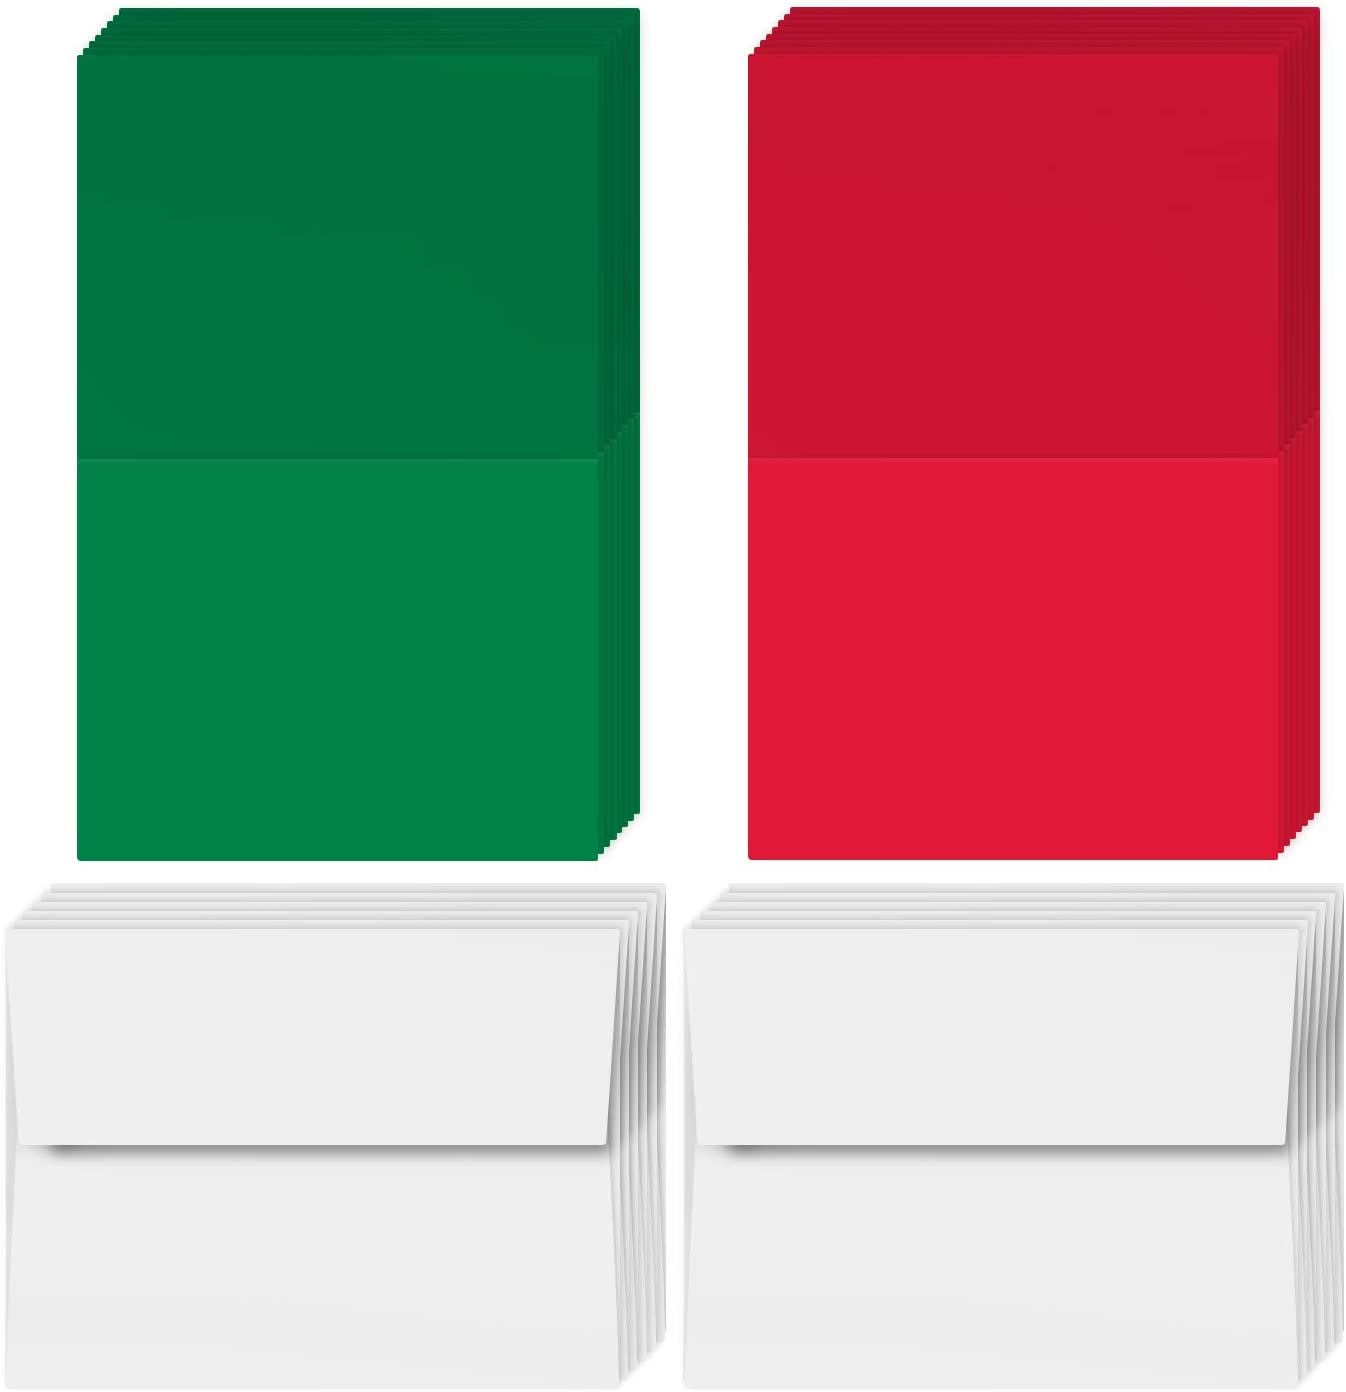 2021 Holiday Christmas Greeting Cards - 25 Red & 25 Green Blank Cards with 50 White Envelopes - Card Size 4.25 x 5.5 Inches When Folded - Envelopes Size A2 : Office Products